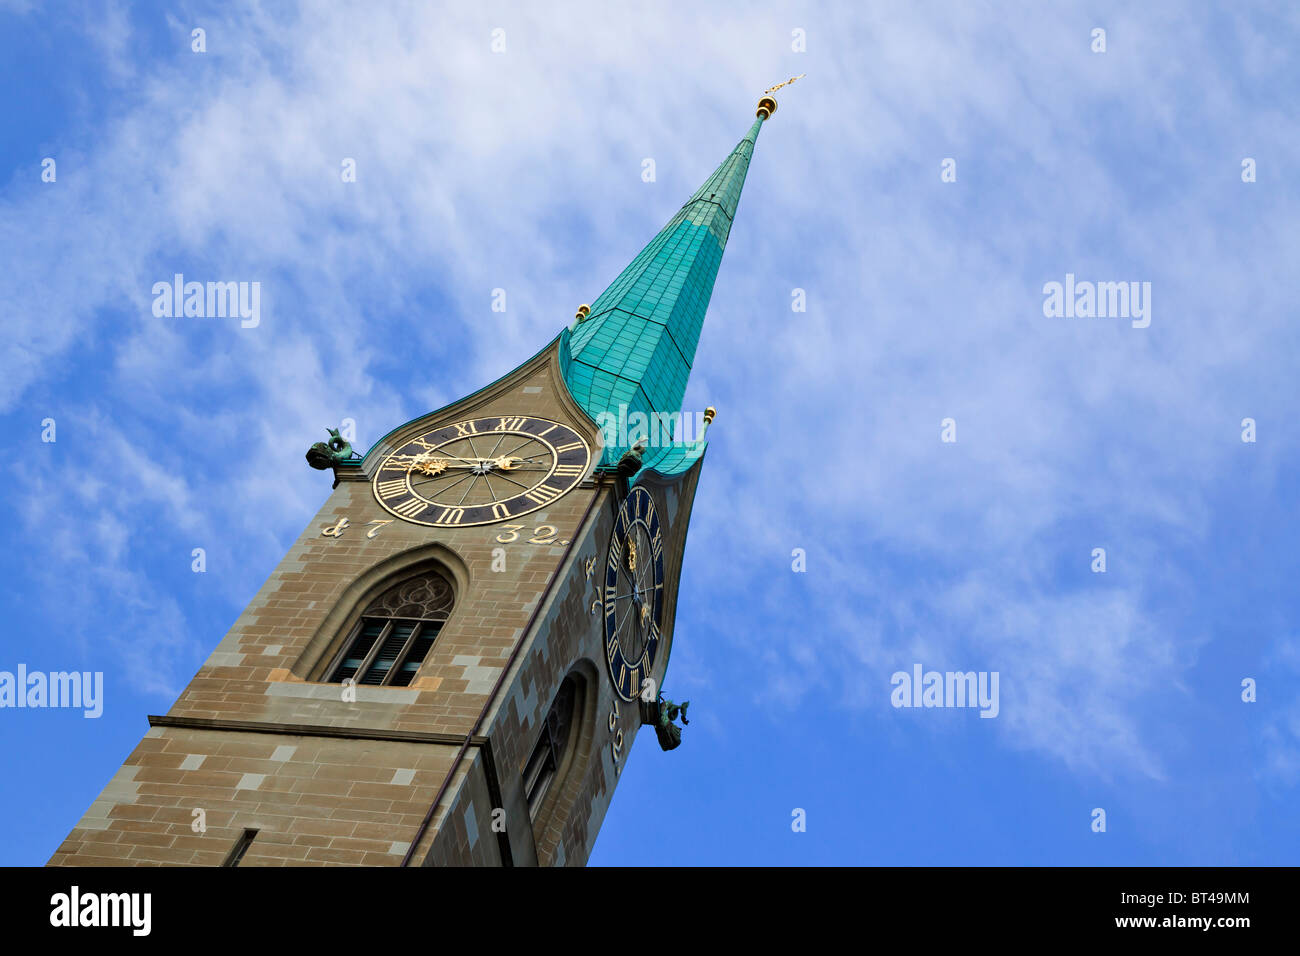 The spire of fraumunster Abbey at an angle against a blue sky. Zurich, Switzerland - Stock Image